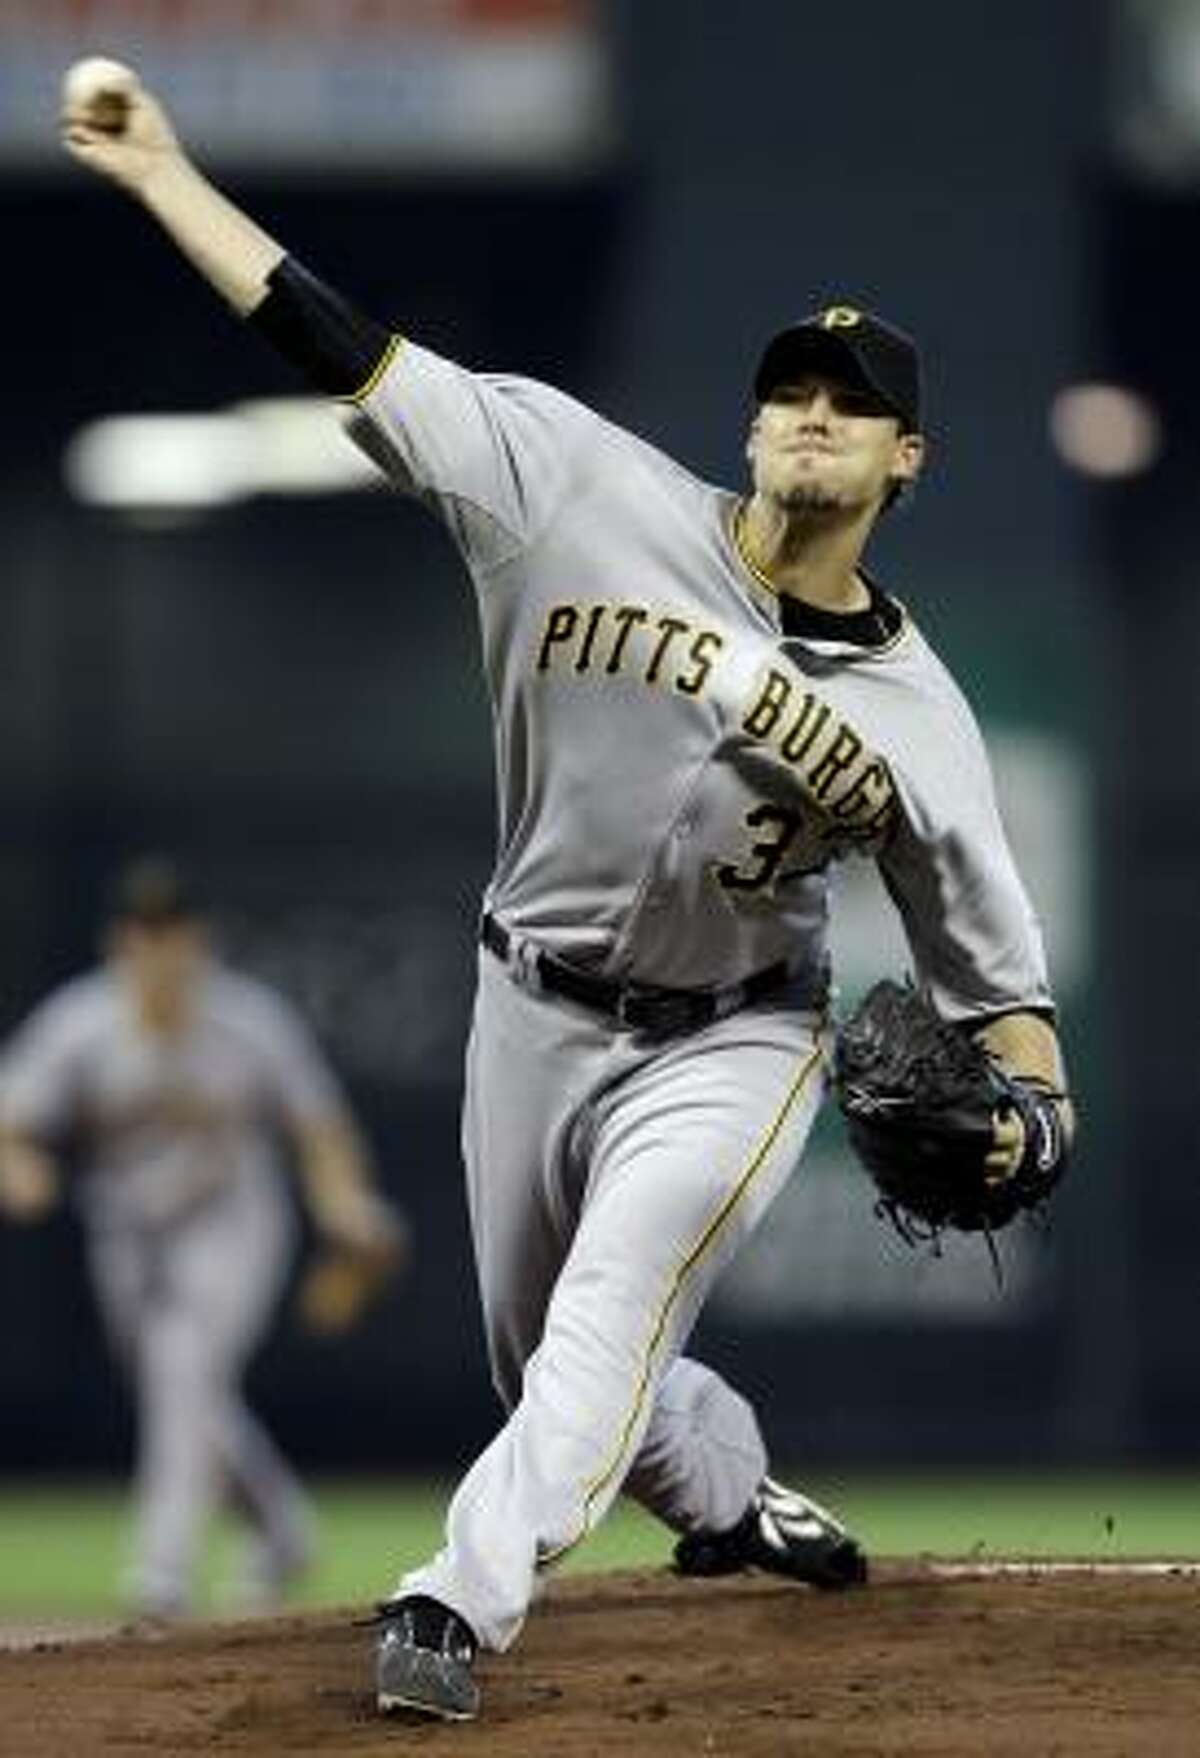 Pirates starter Charlie Morton throws during the first inning against the Astros. Morton gave up five earned runs on 10 hits in four innings pitched. He fell to 1-2 with the loss.